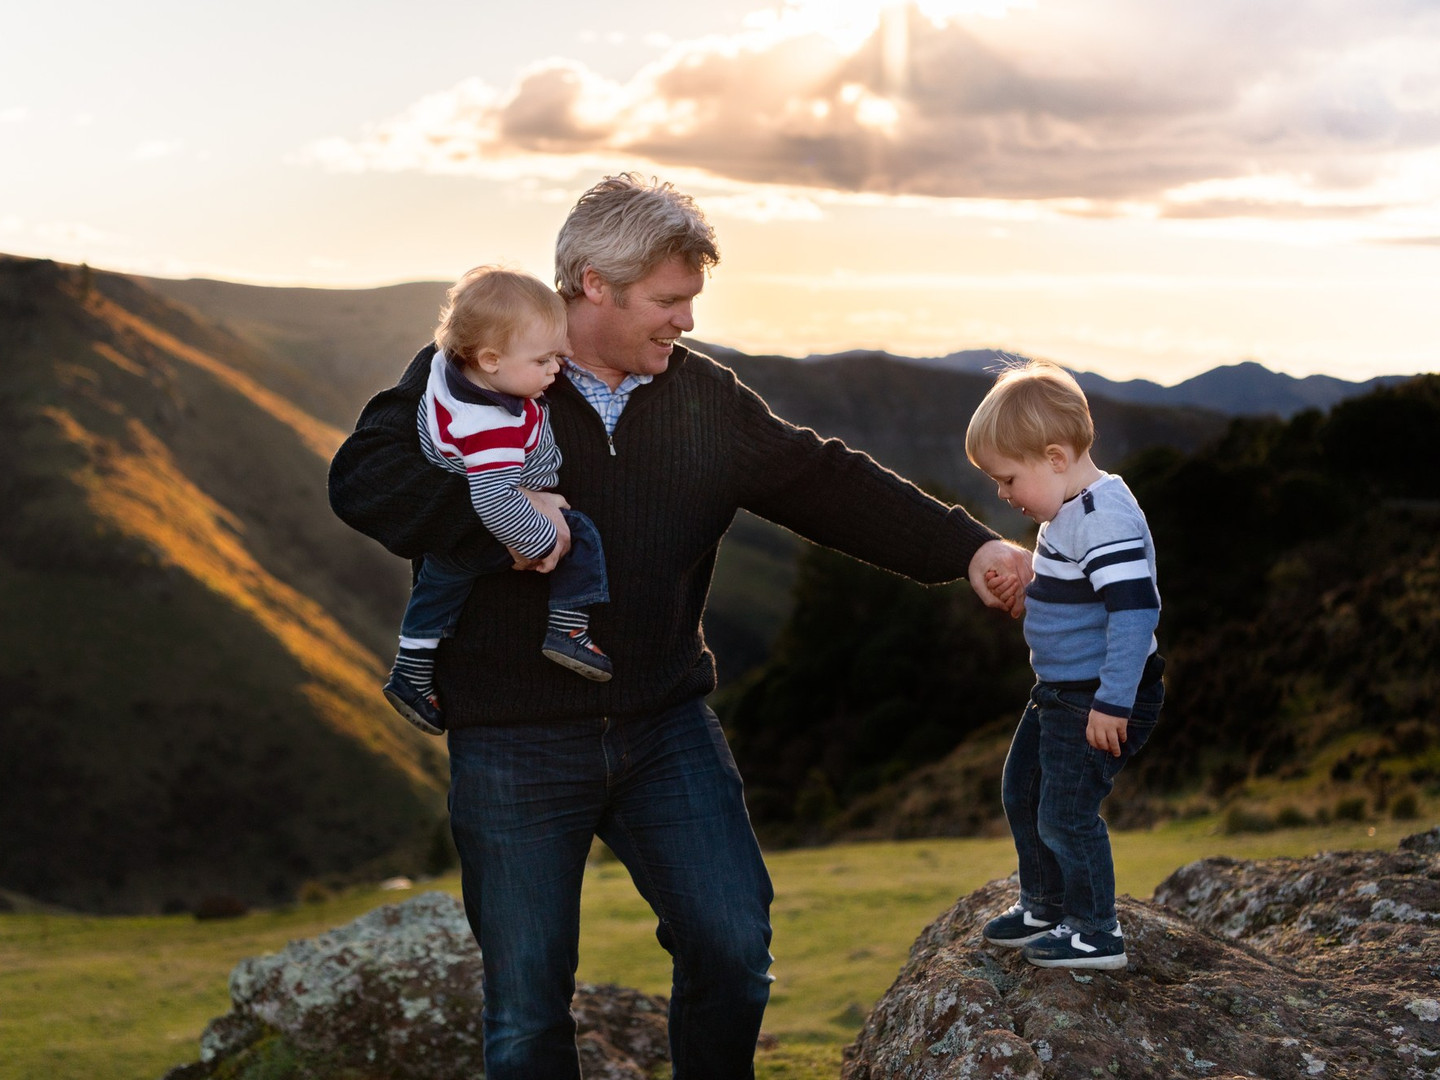 Portrait photograph of a dad and his two son on a hill at sunset during a family photography session